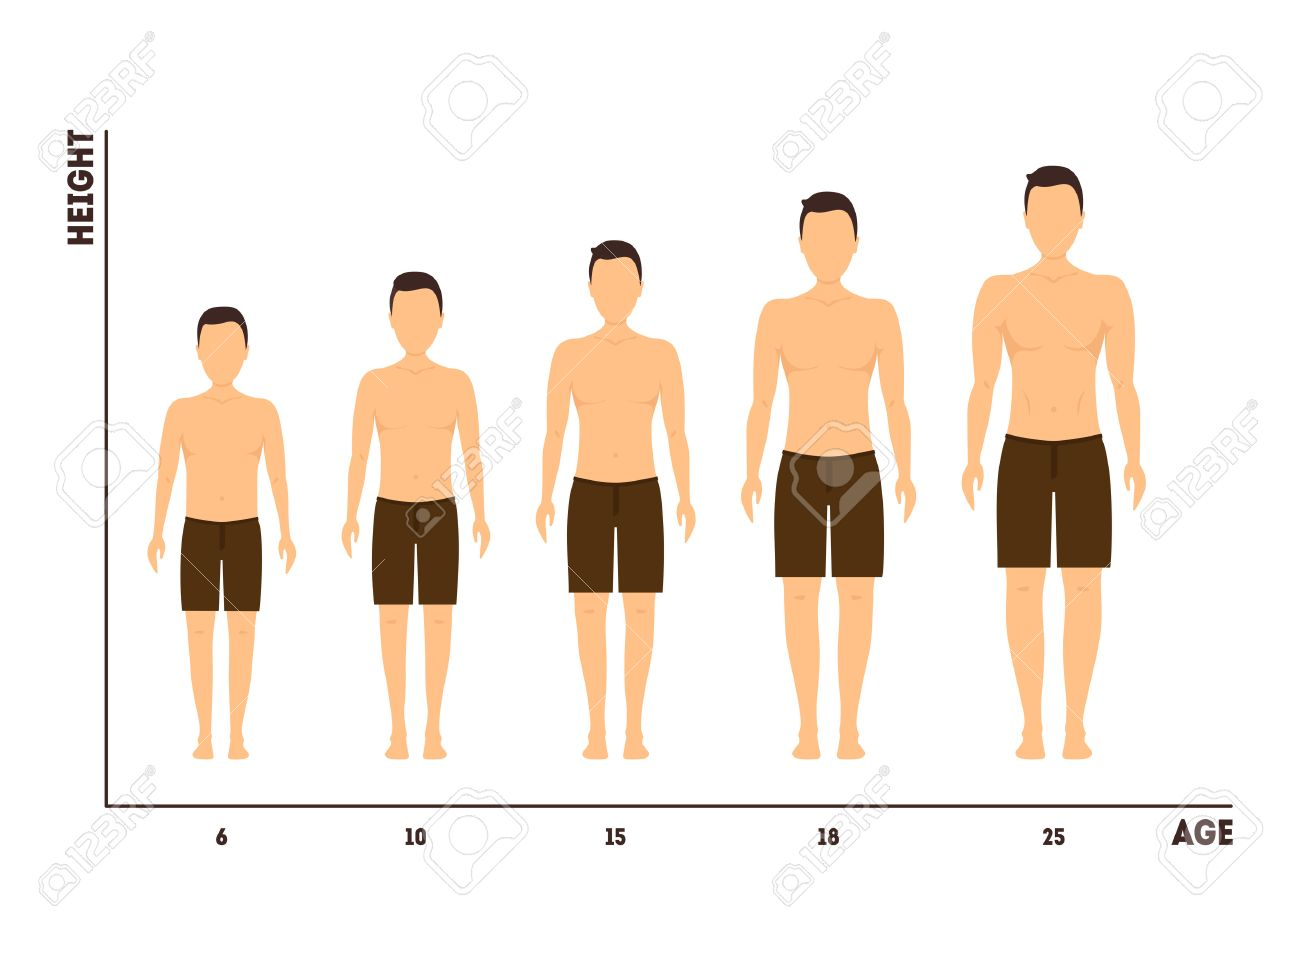 Height and Age Measurement of Growth from Boy to Man. Vector - 73355327